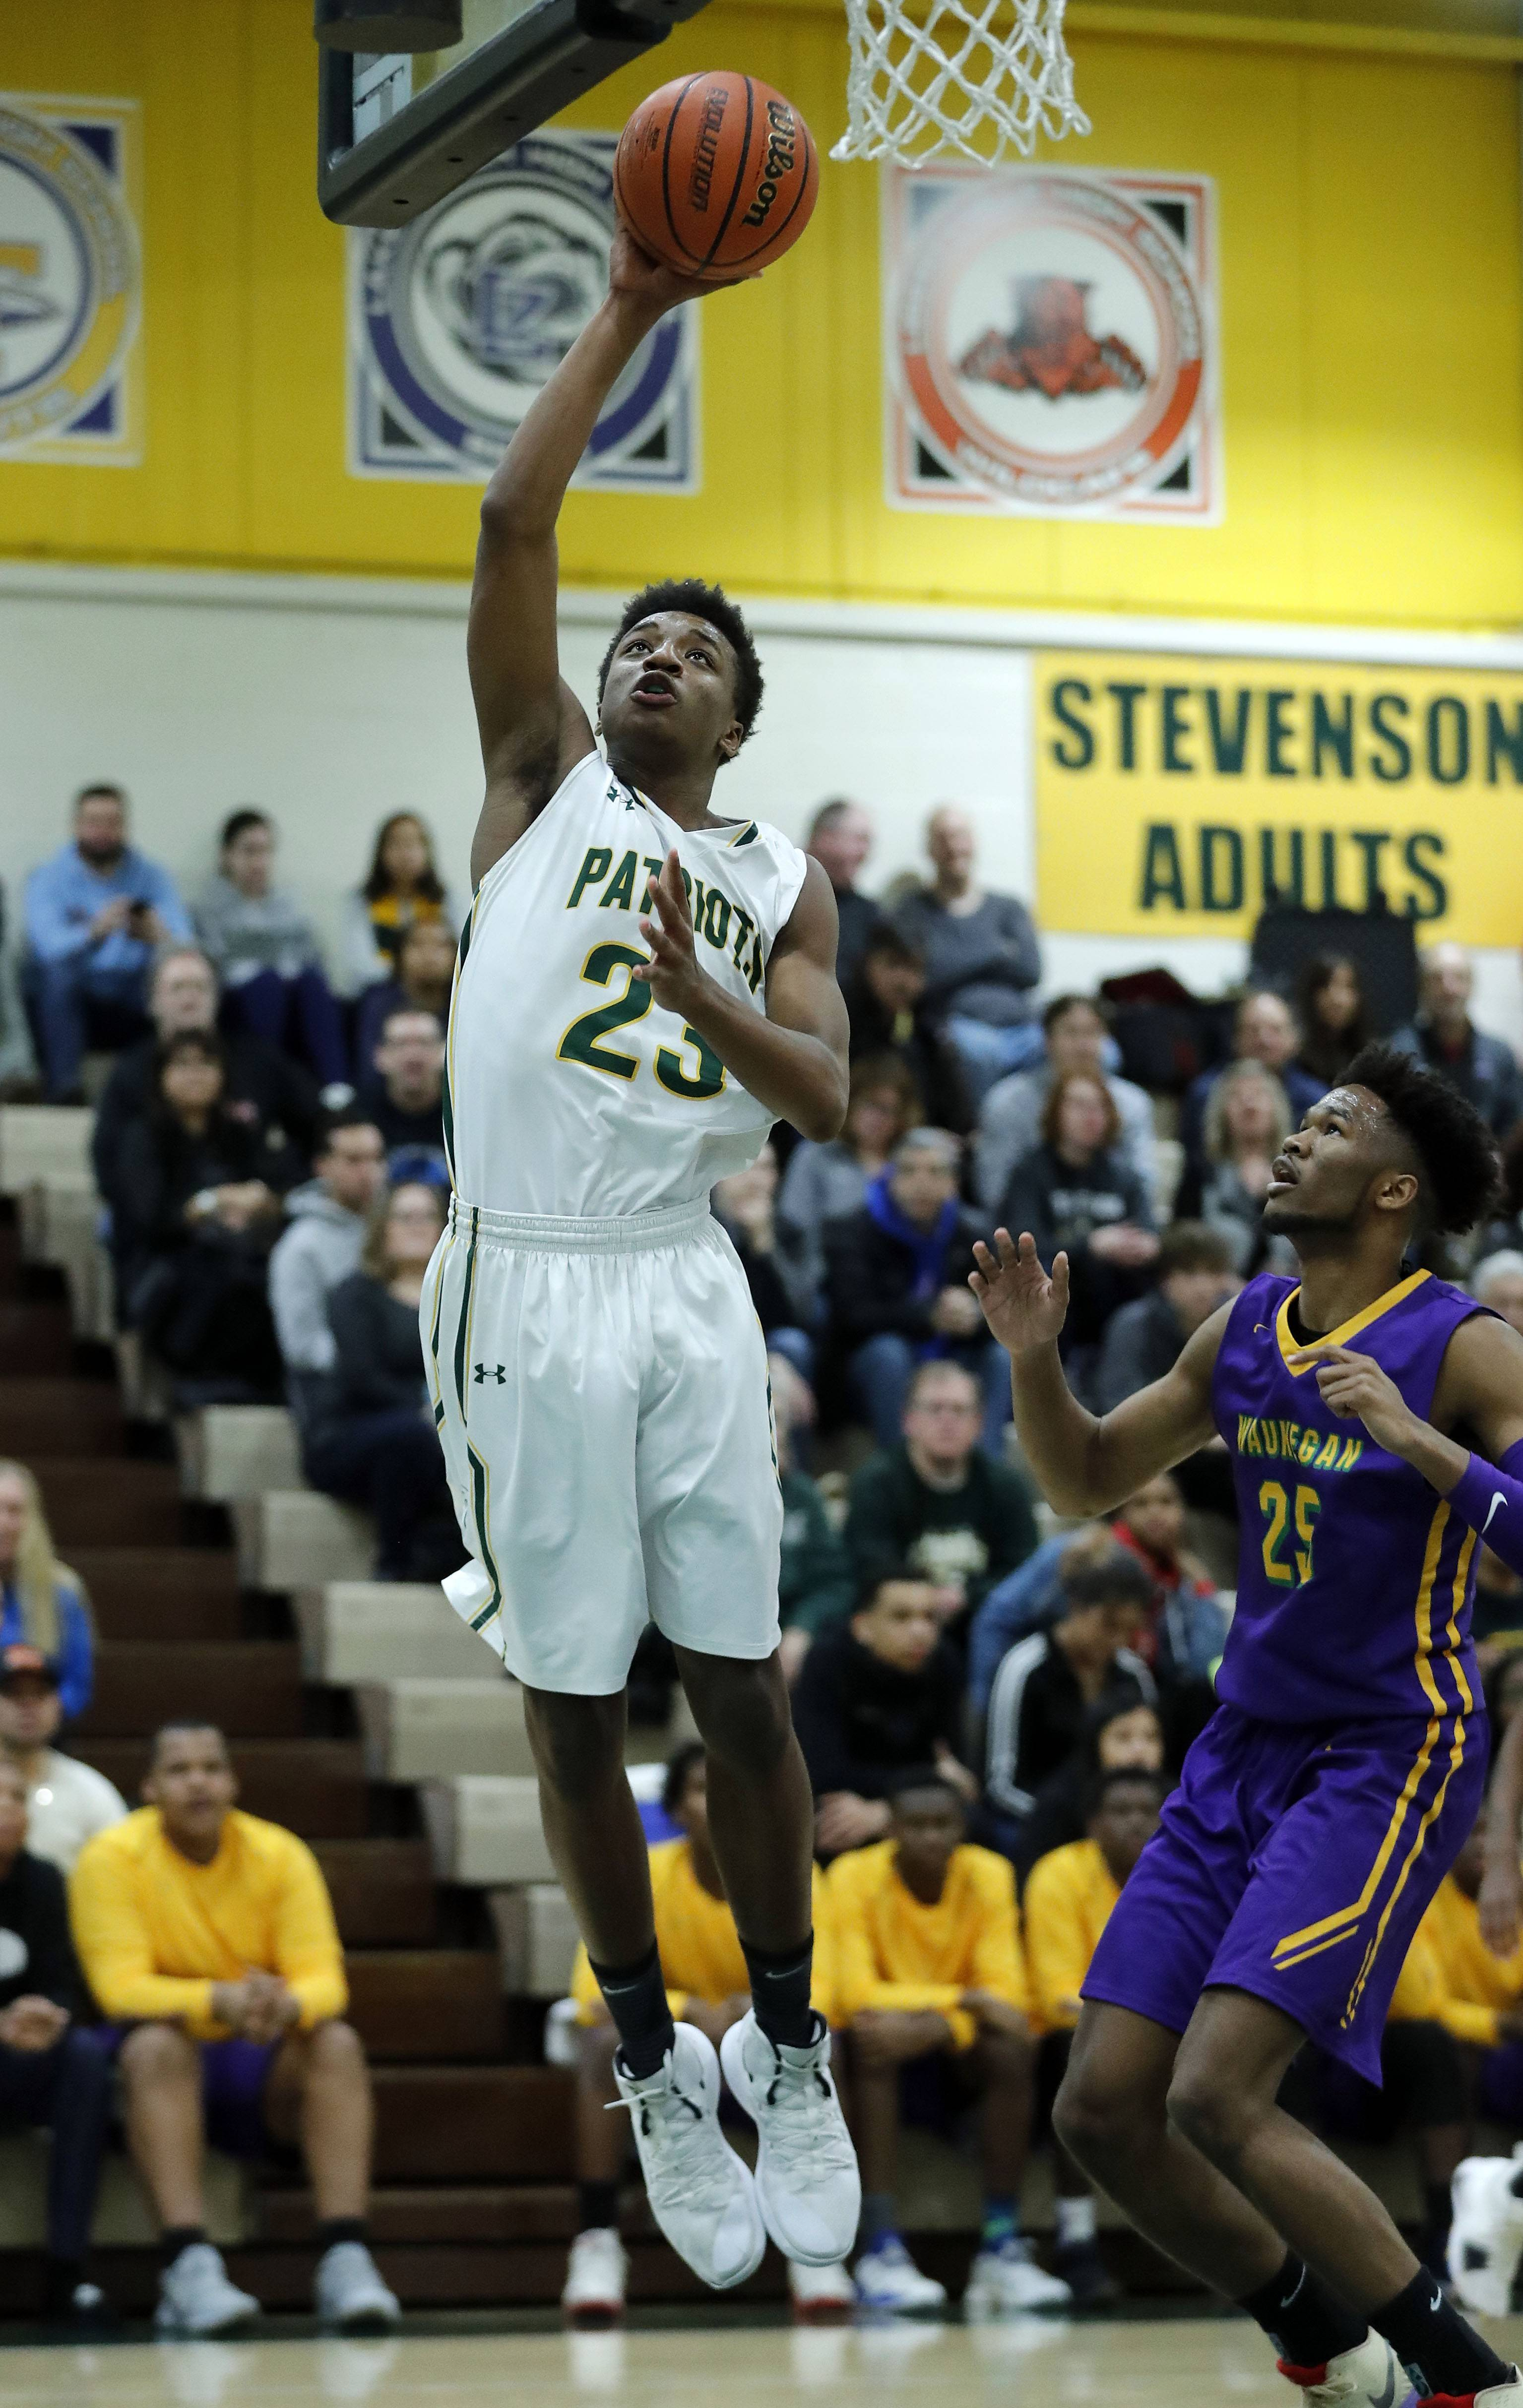 Stevenson's RJ Holmes drive in for a layup of Waukegan's Bryant Brown during their game Friday night in Lincolnshire.